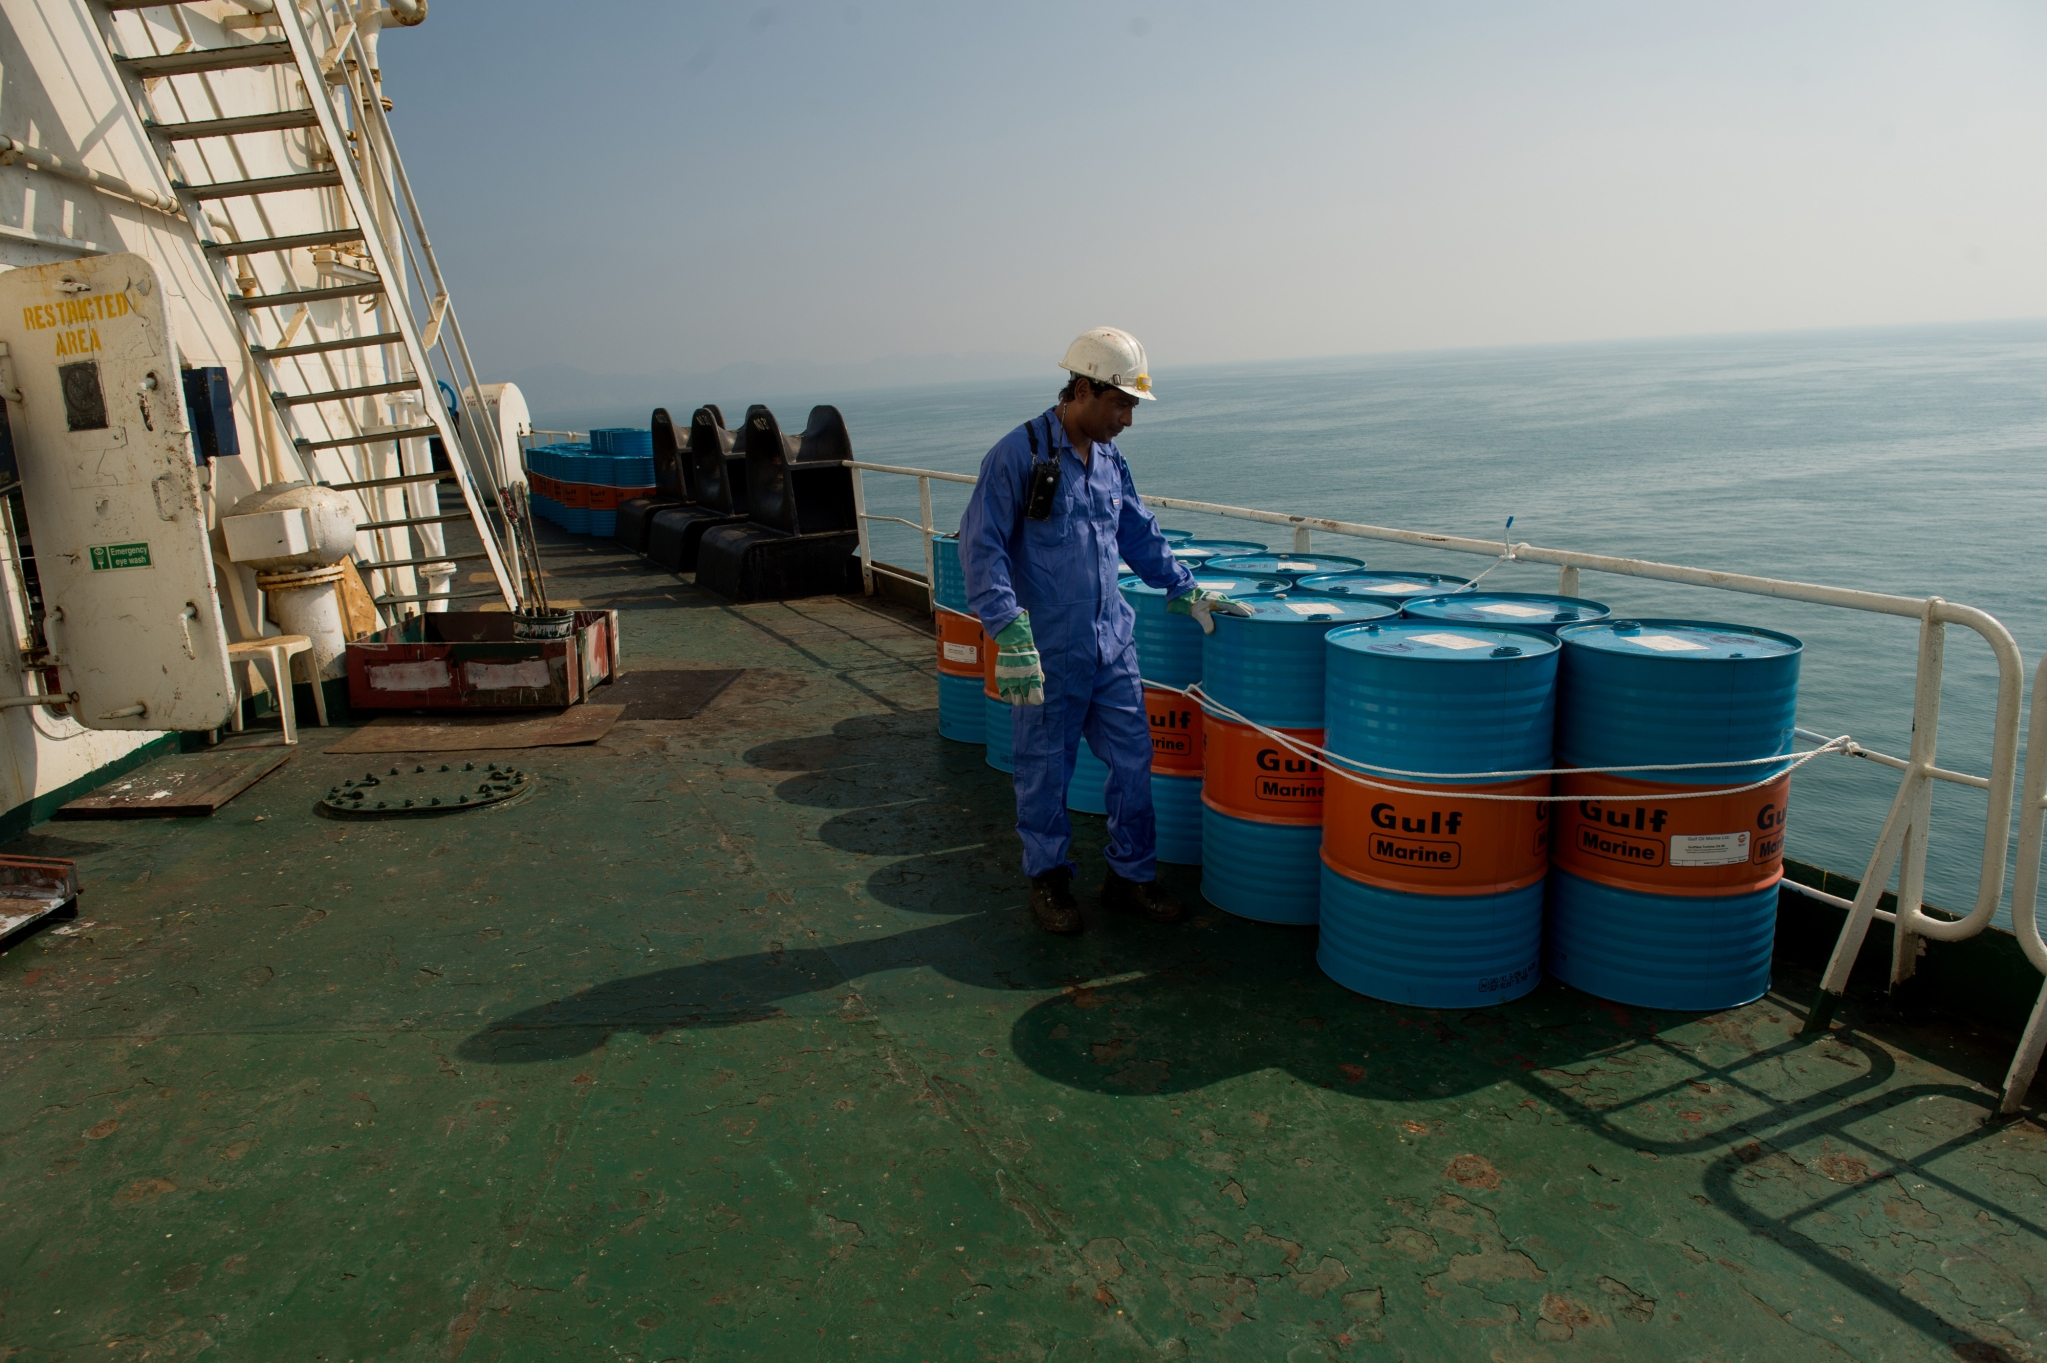 How could Iran disrupt Gulf oil flows?